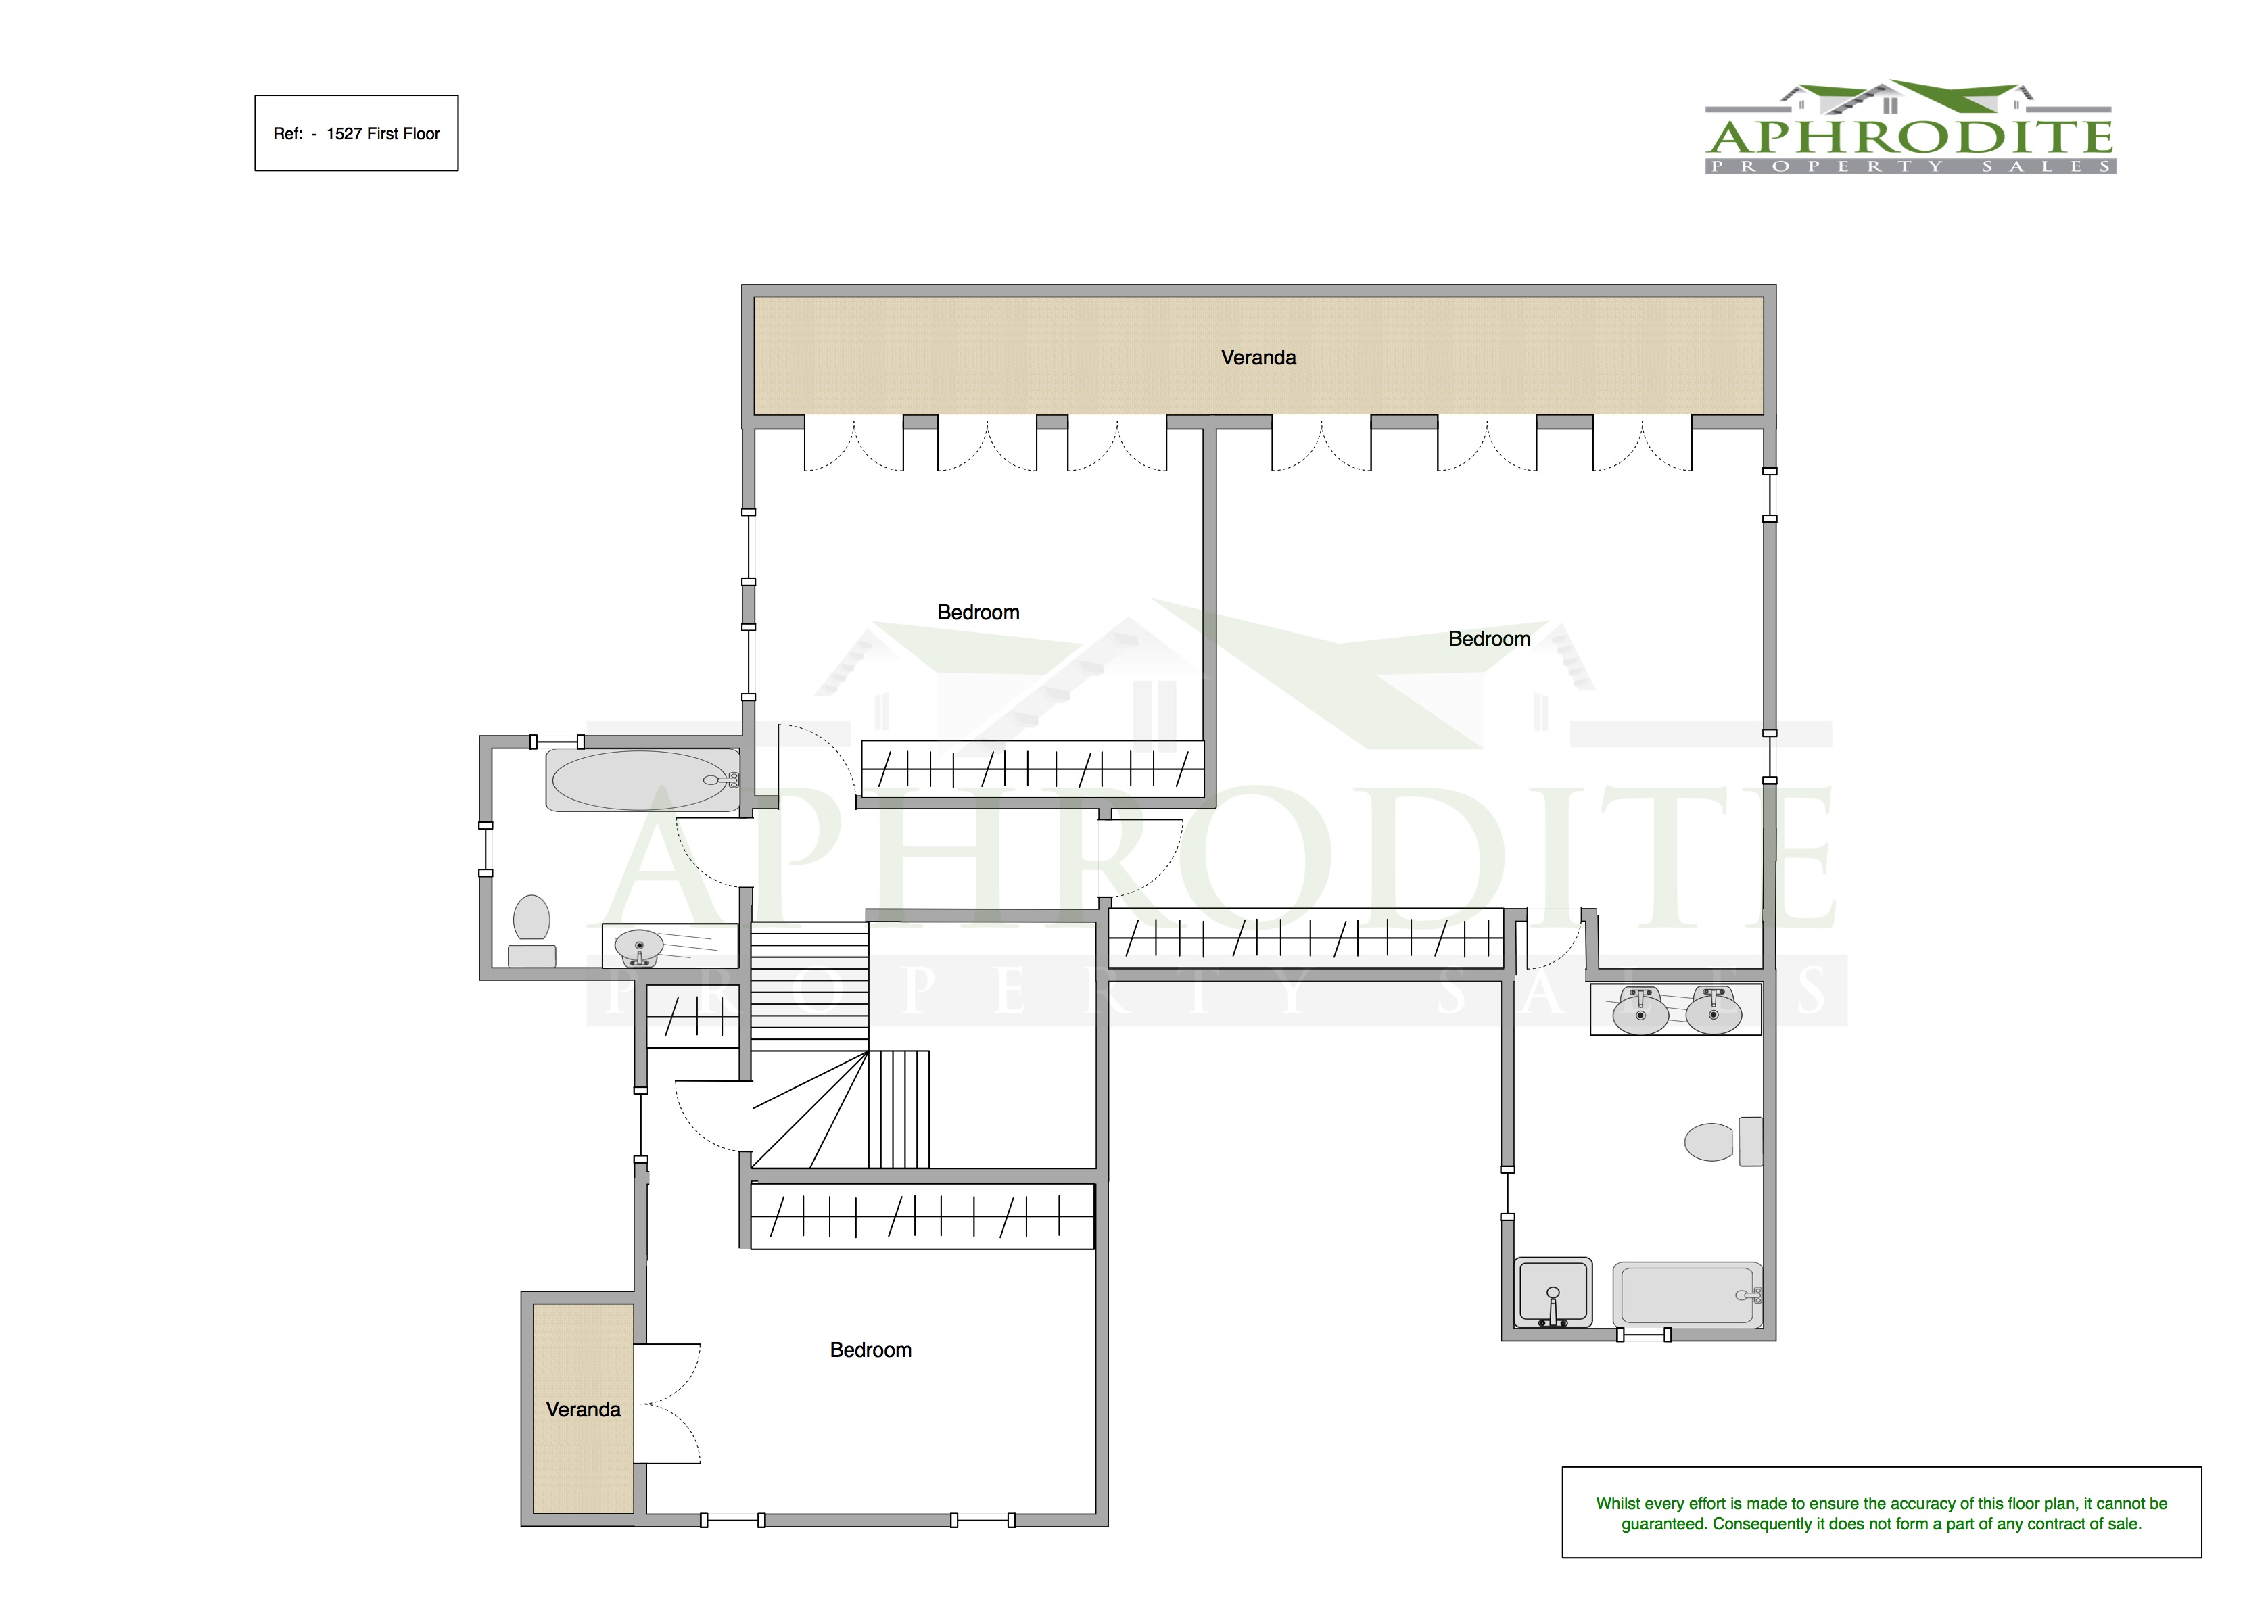 1527 - 4 Bedroom Villa - Aphrodite Hills floorplan